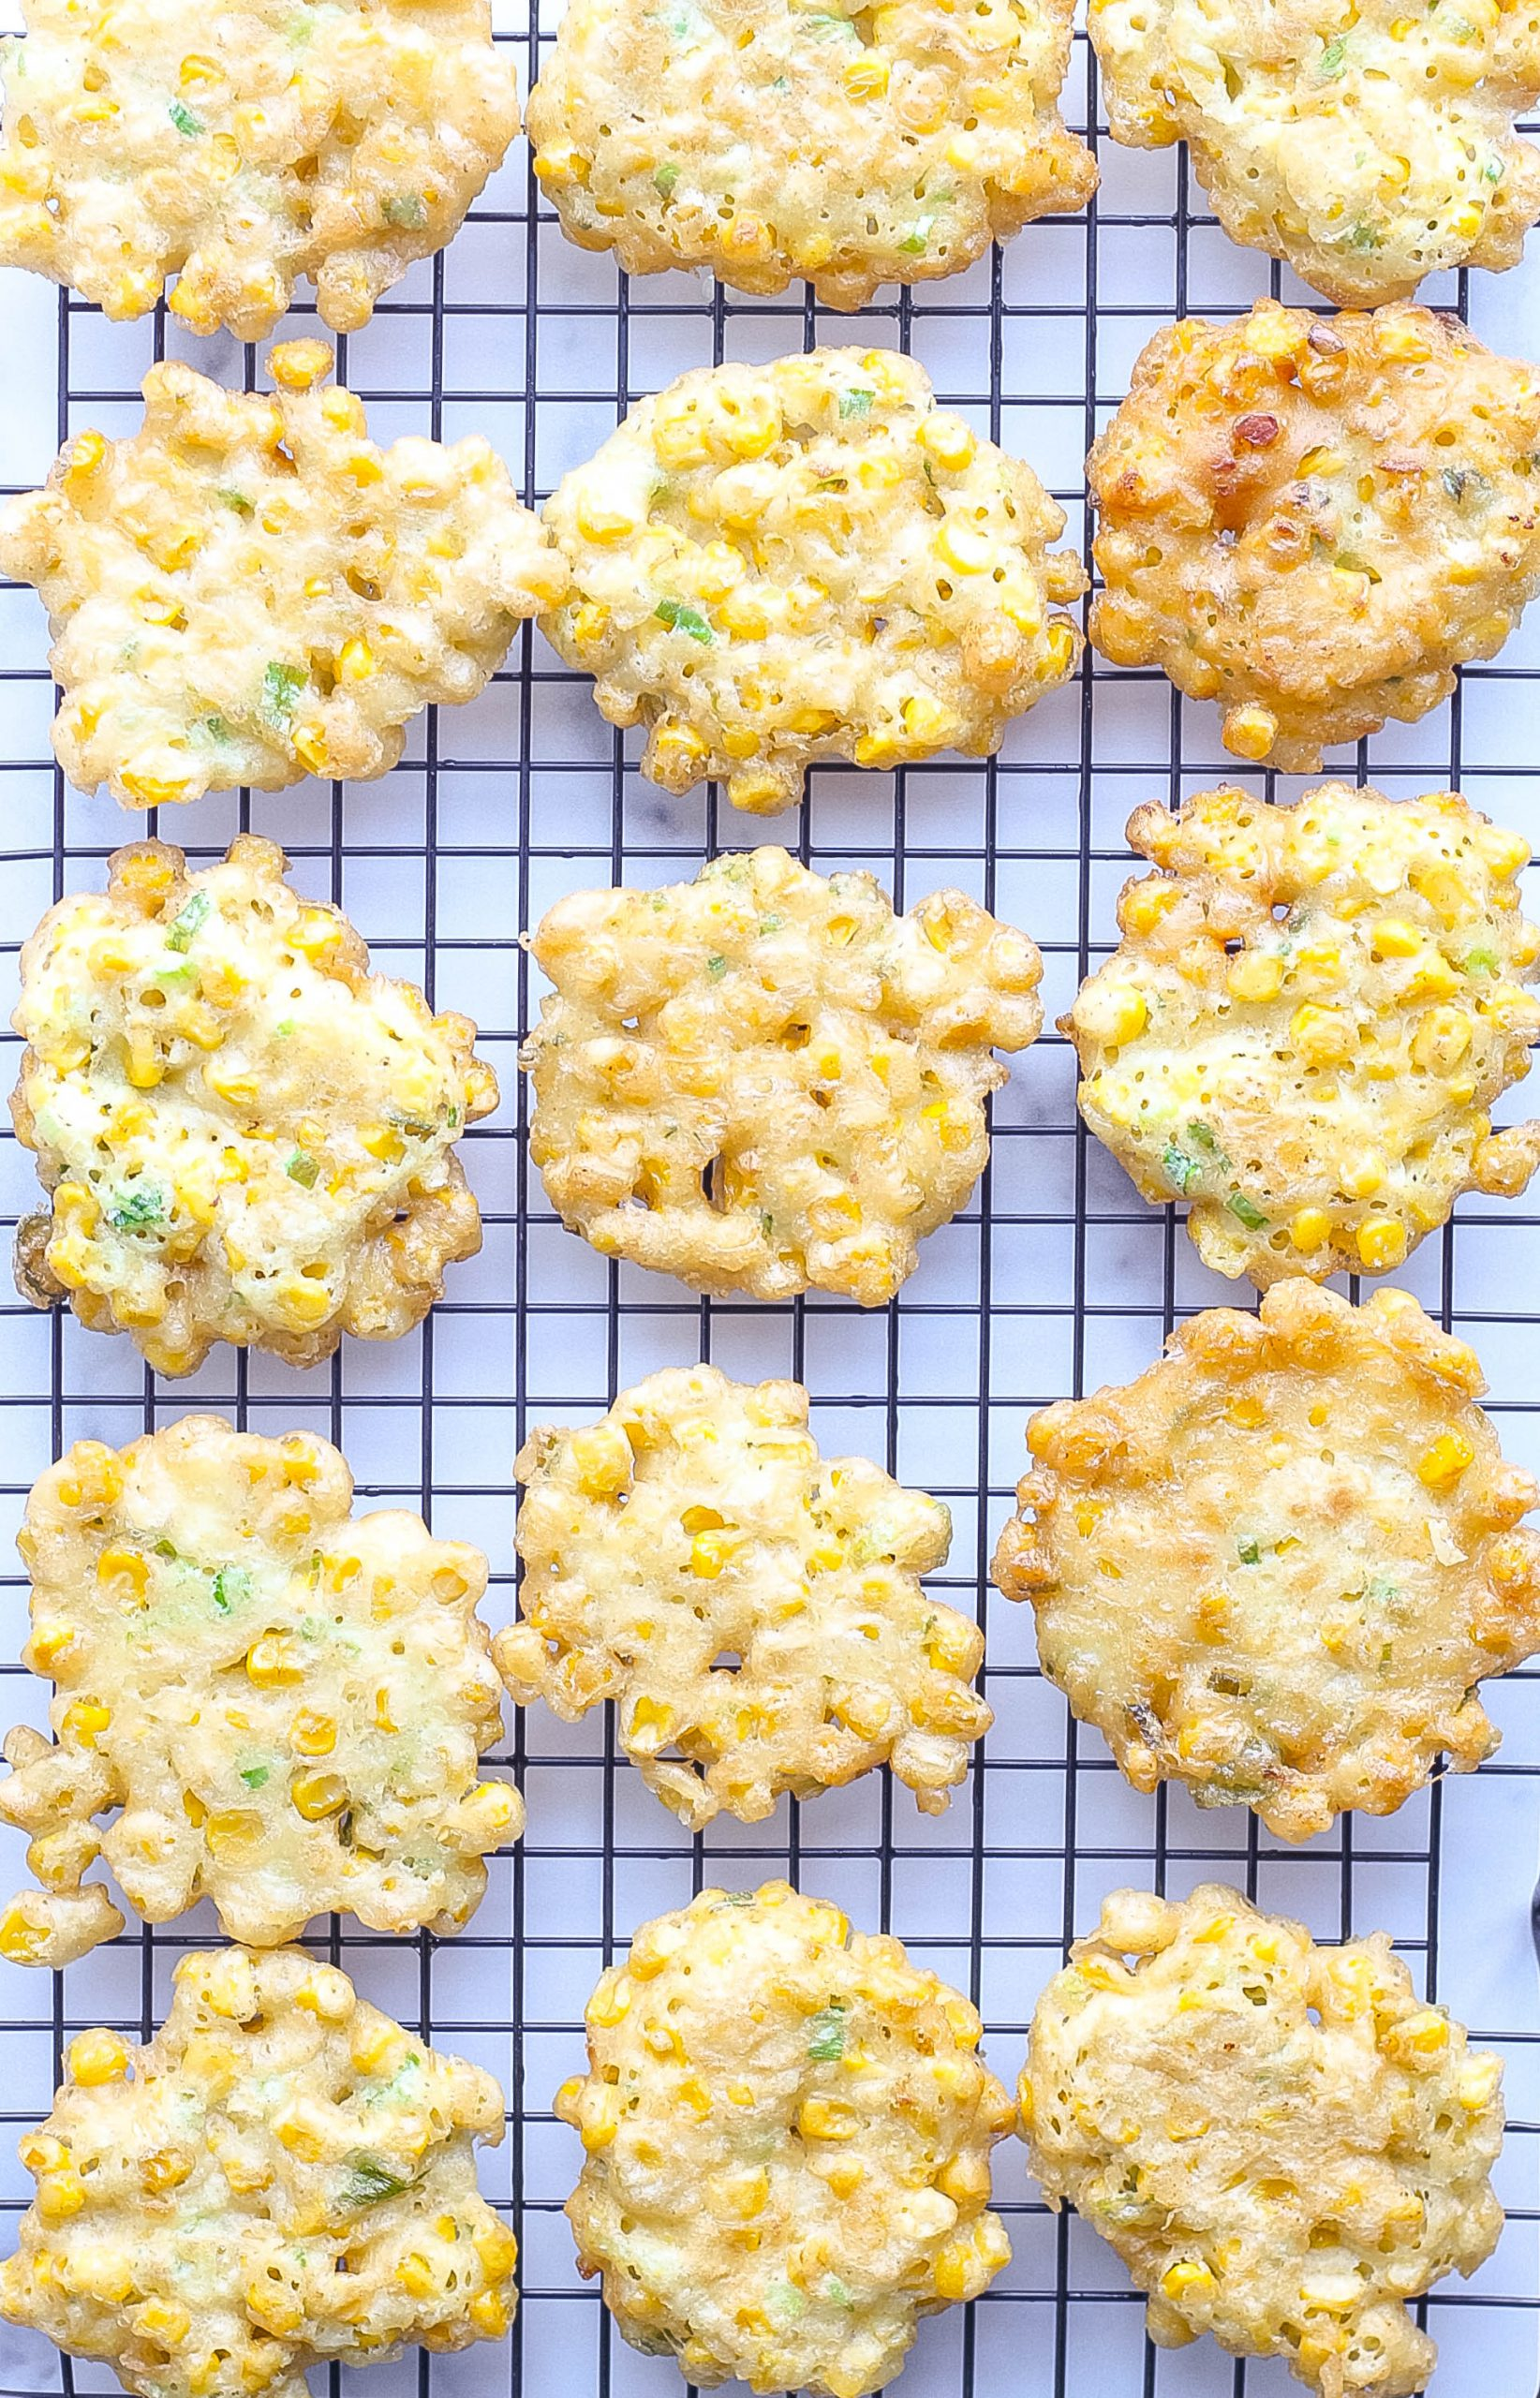 Corn Fritters on cooling rack